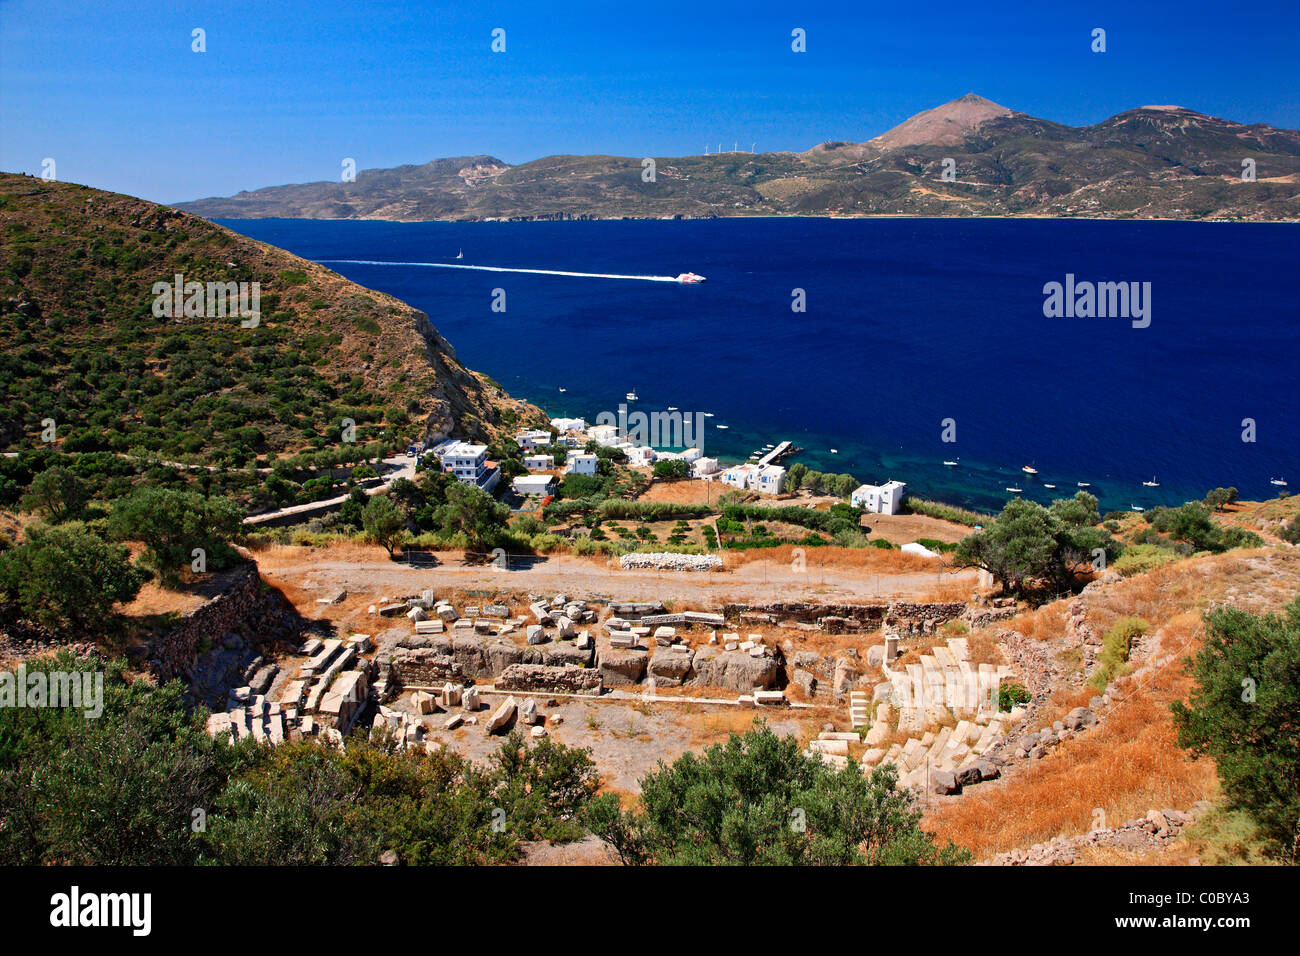 The ancient theater of Milos island, right above Klima village, Cyclades, Greece - Stock Image